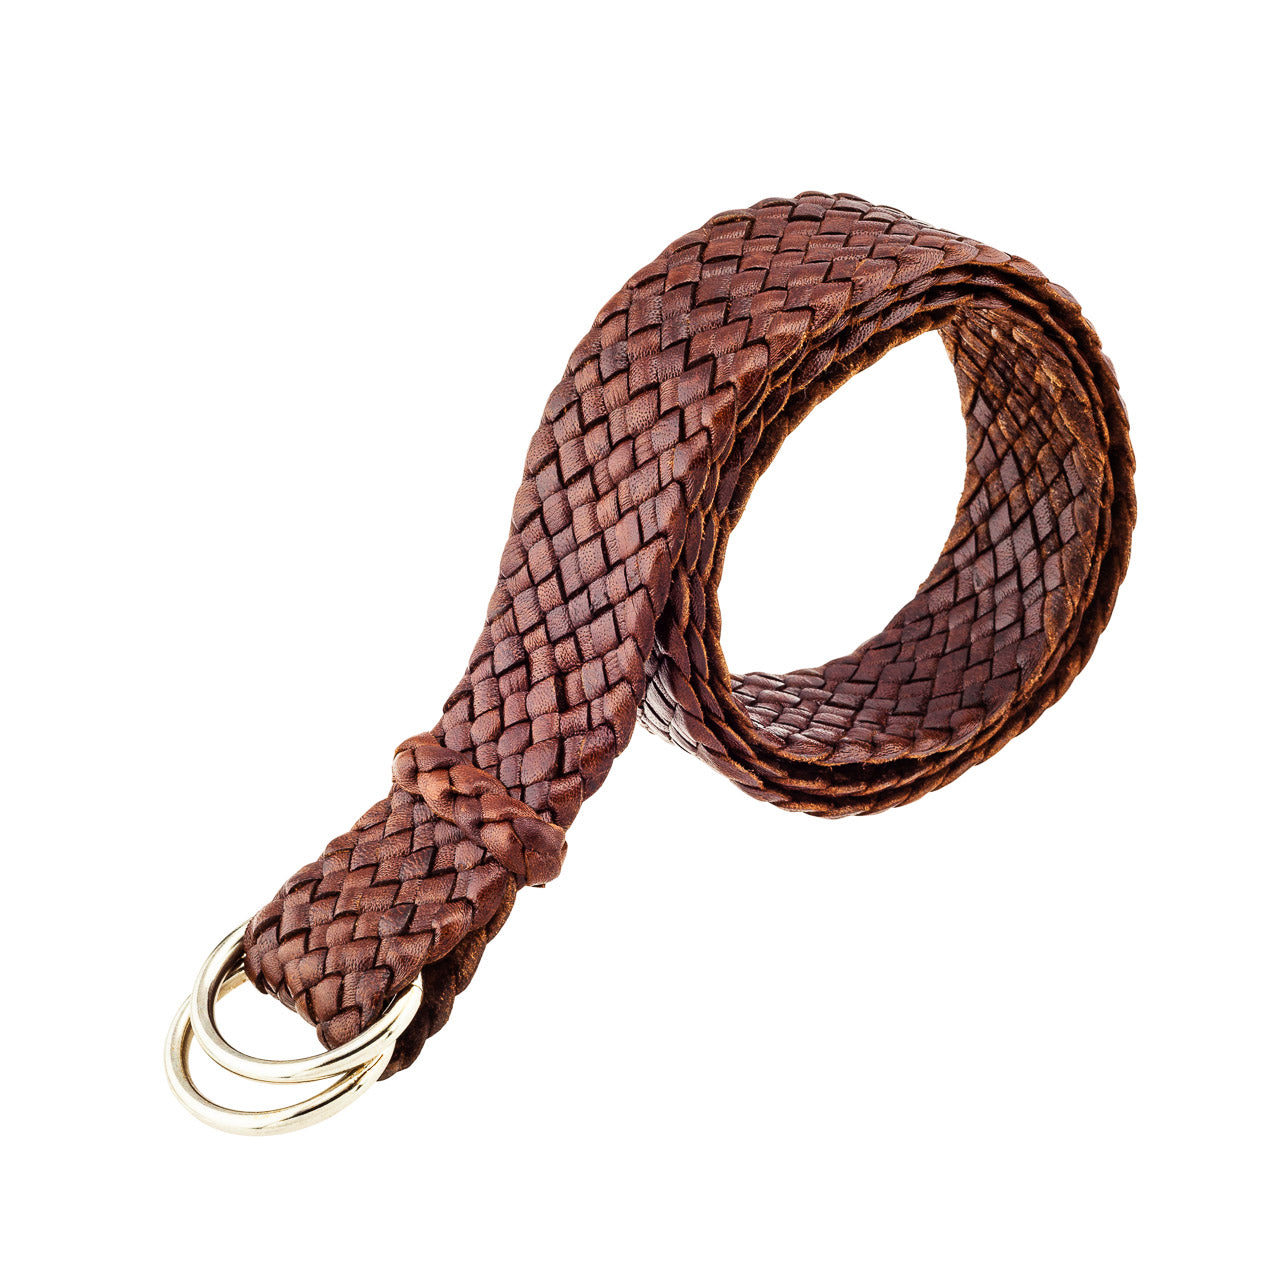 Queenslander Kangaroo Plaited Mens Ring Belt (32mm Wide)